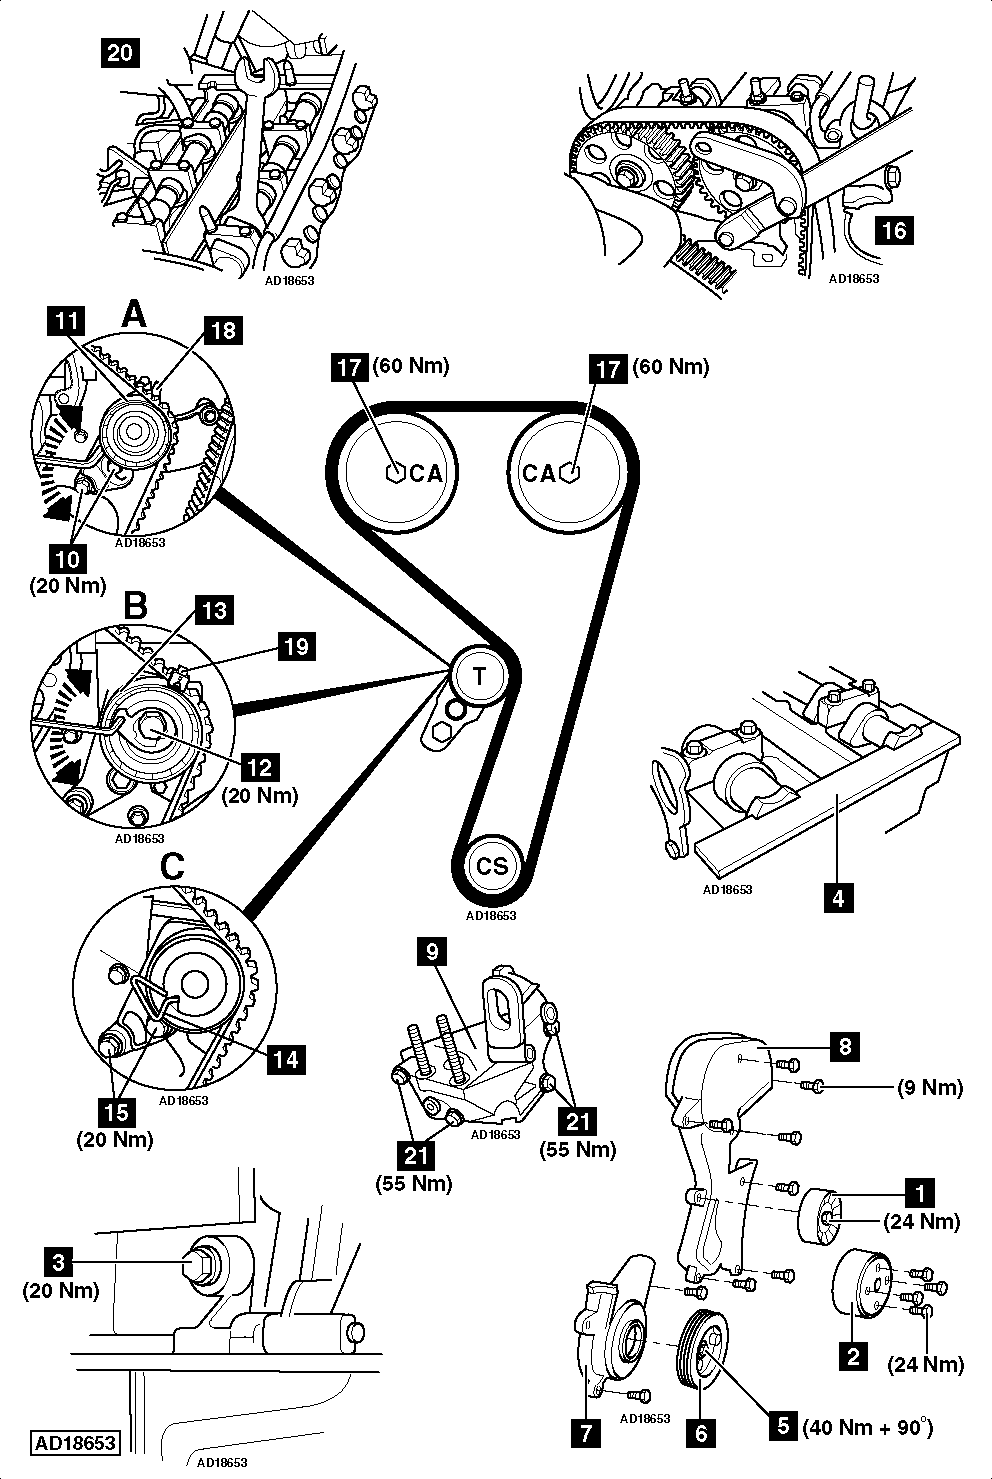 Ford Timing Marks Diagram - Wiring Diagram Experts on 05 ford focus wiring diagram, 03 ford focus brakes diagram, 03 ford focus serpentine belt diagram, 03 ford focus air cleaner, 03 ford focus system, 02 ford focus wiring diagram, 03 ford focus headlight switch, 03 ford focus door, 03 ford focus parts list,